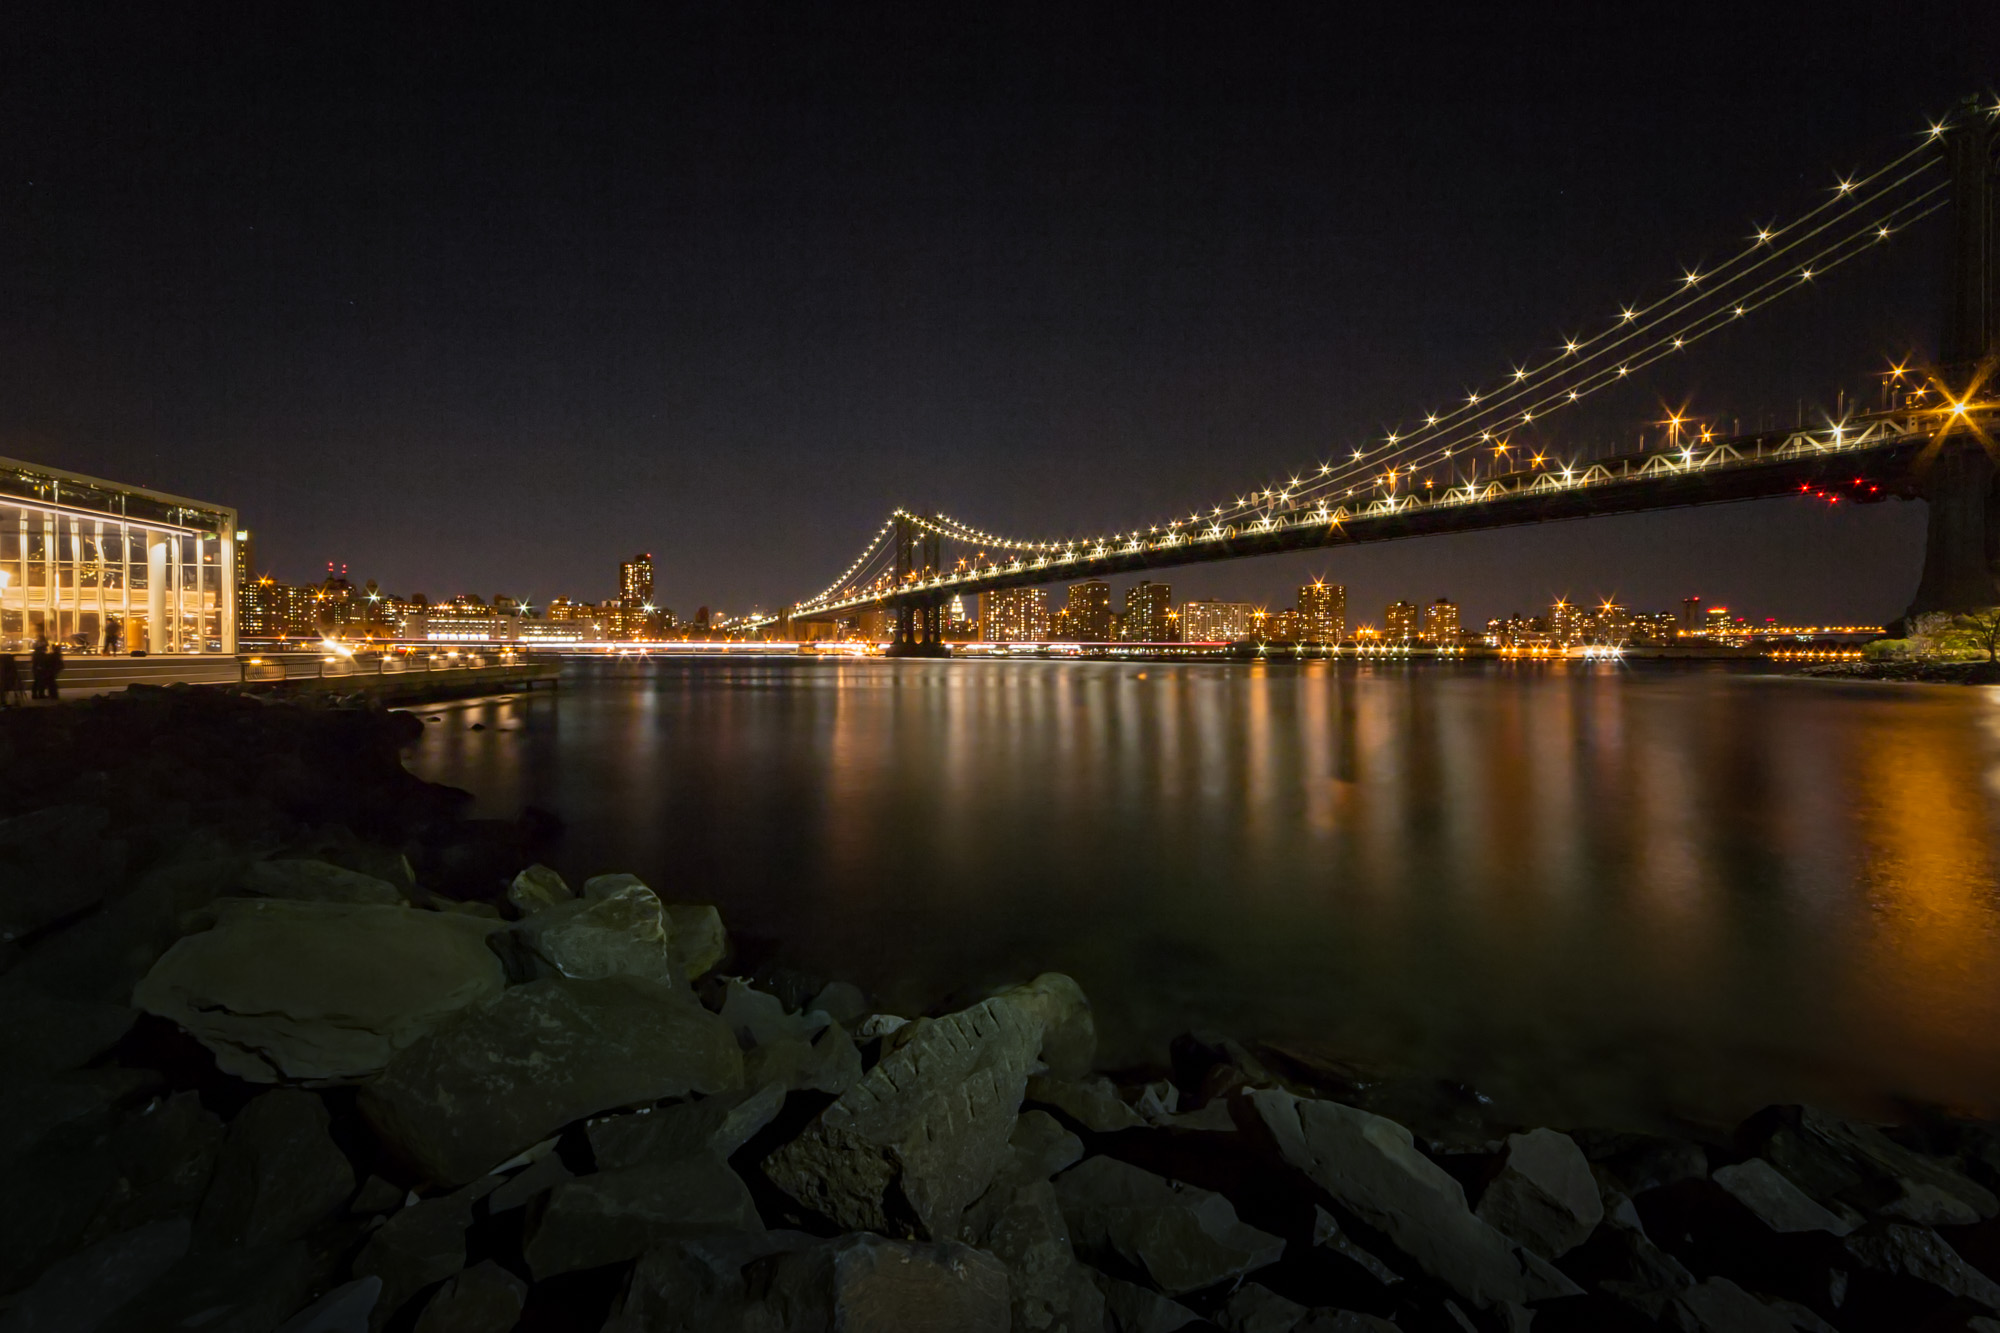 30 seconds Under the Manhattan Bridge